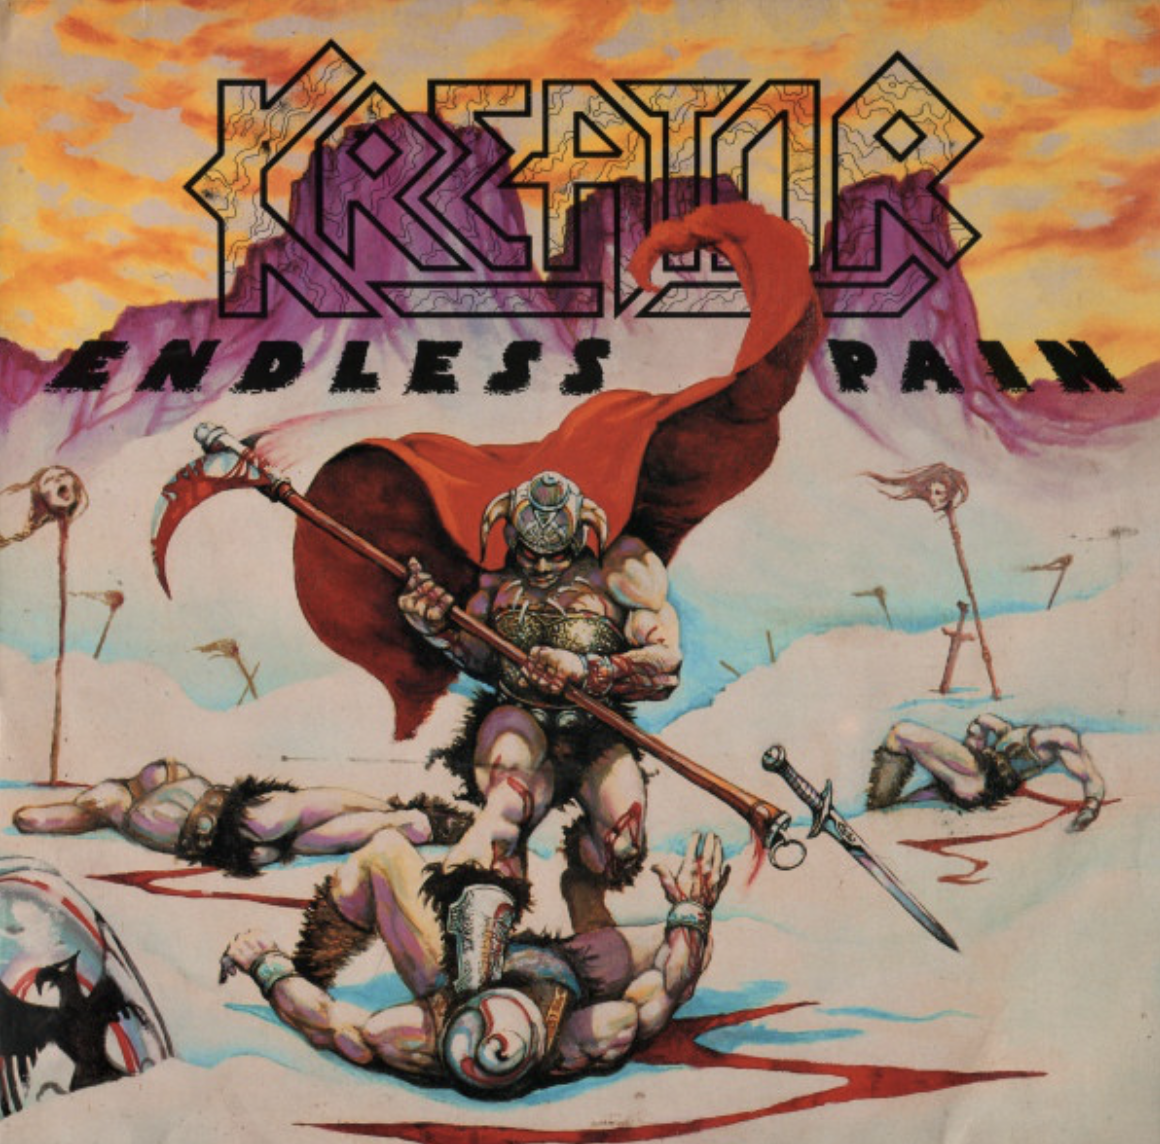 Kreator - Endless Pain 2017 2x LP Reissue 180G Gatefold - German Thrash Metal